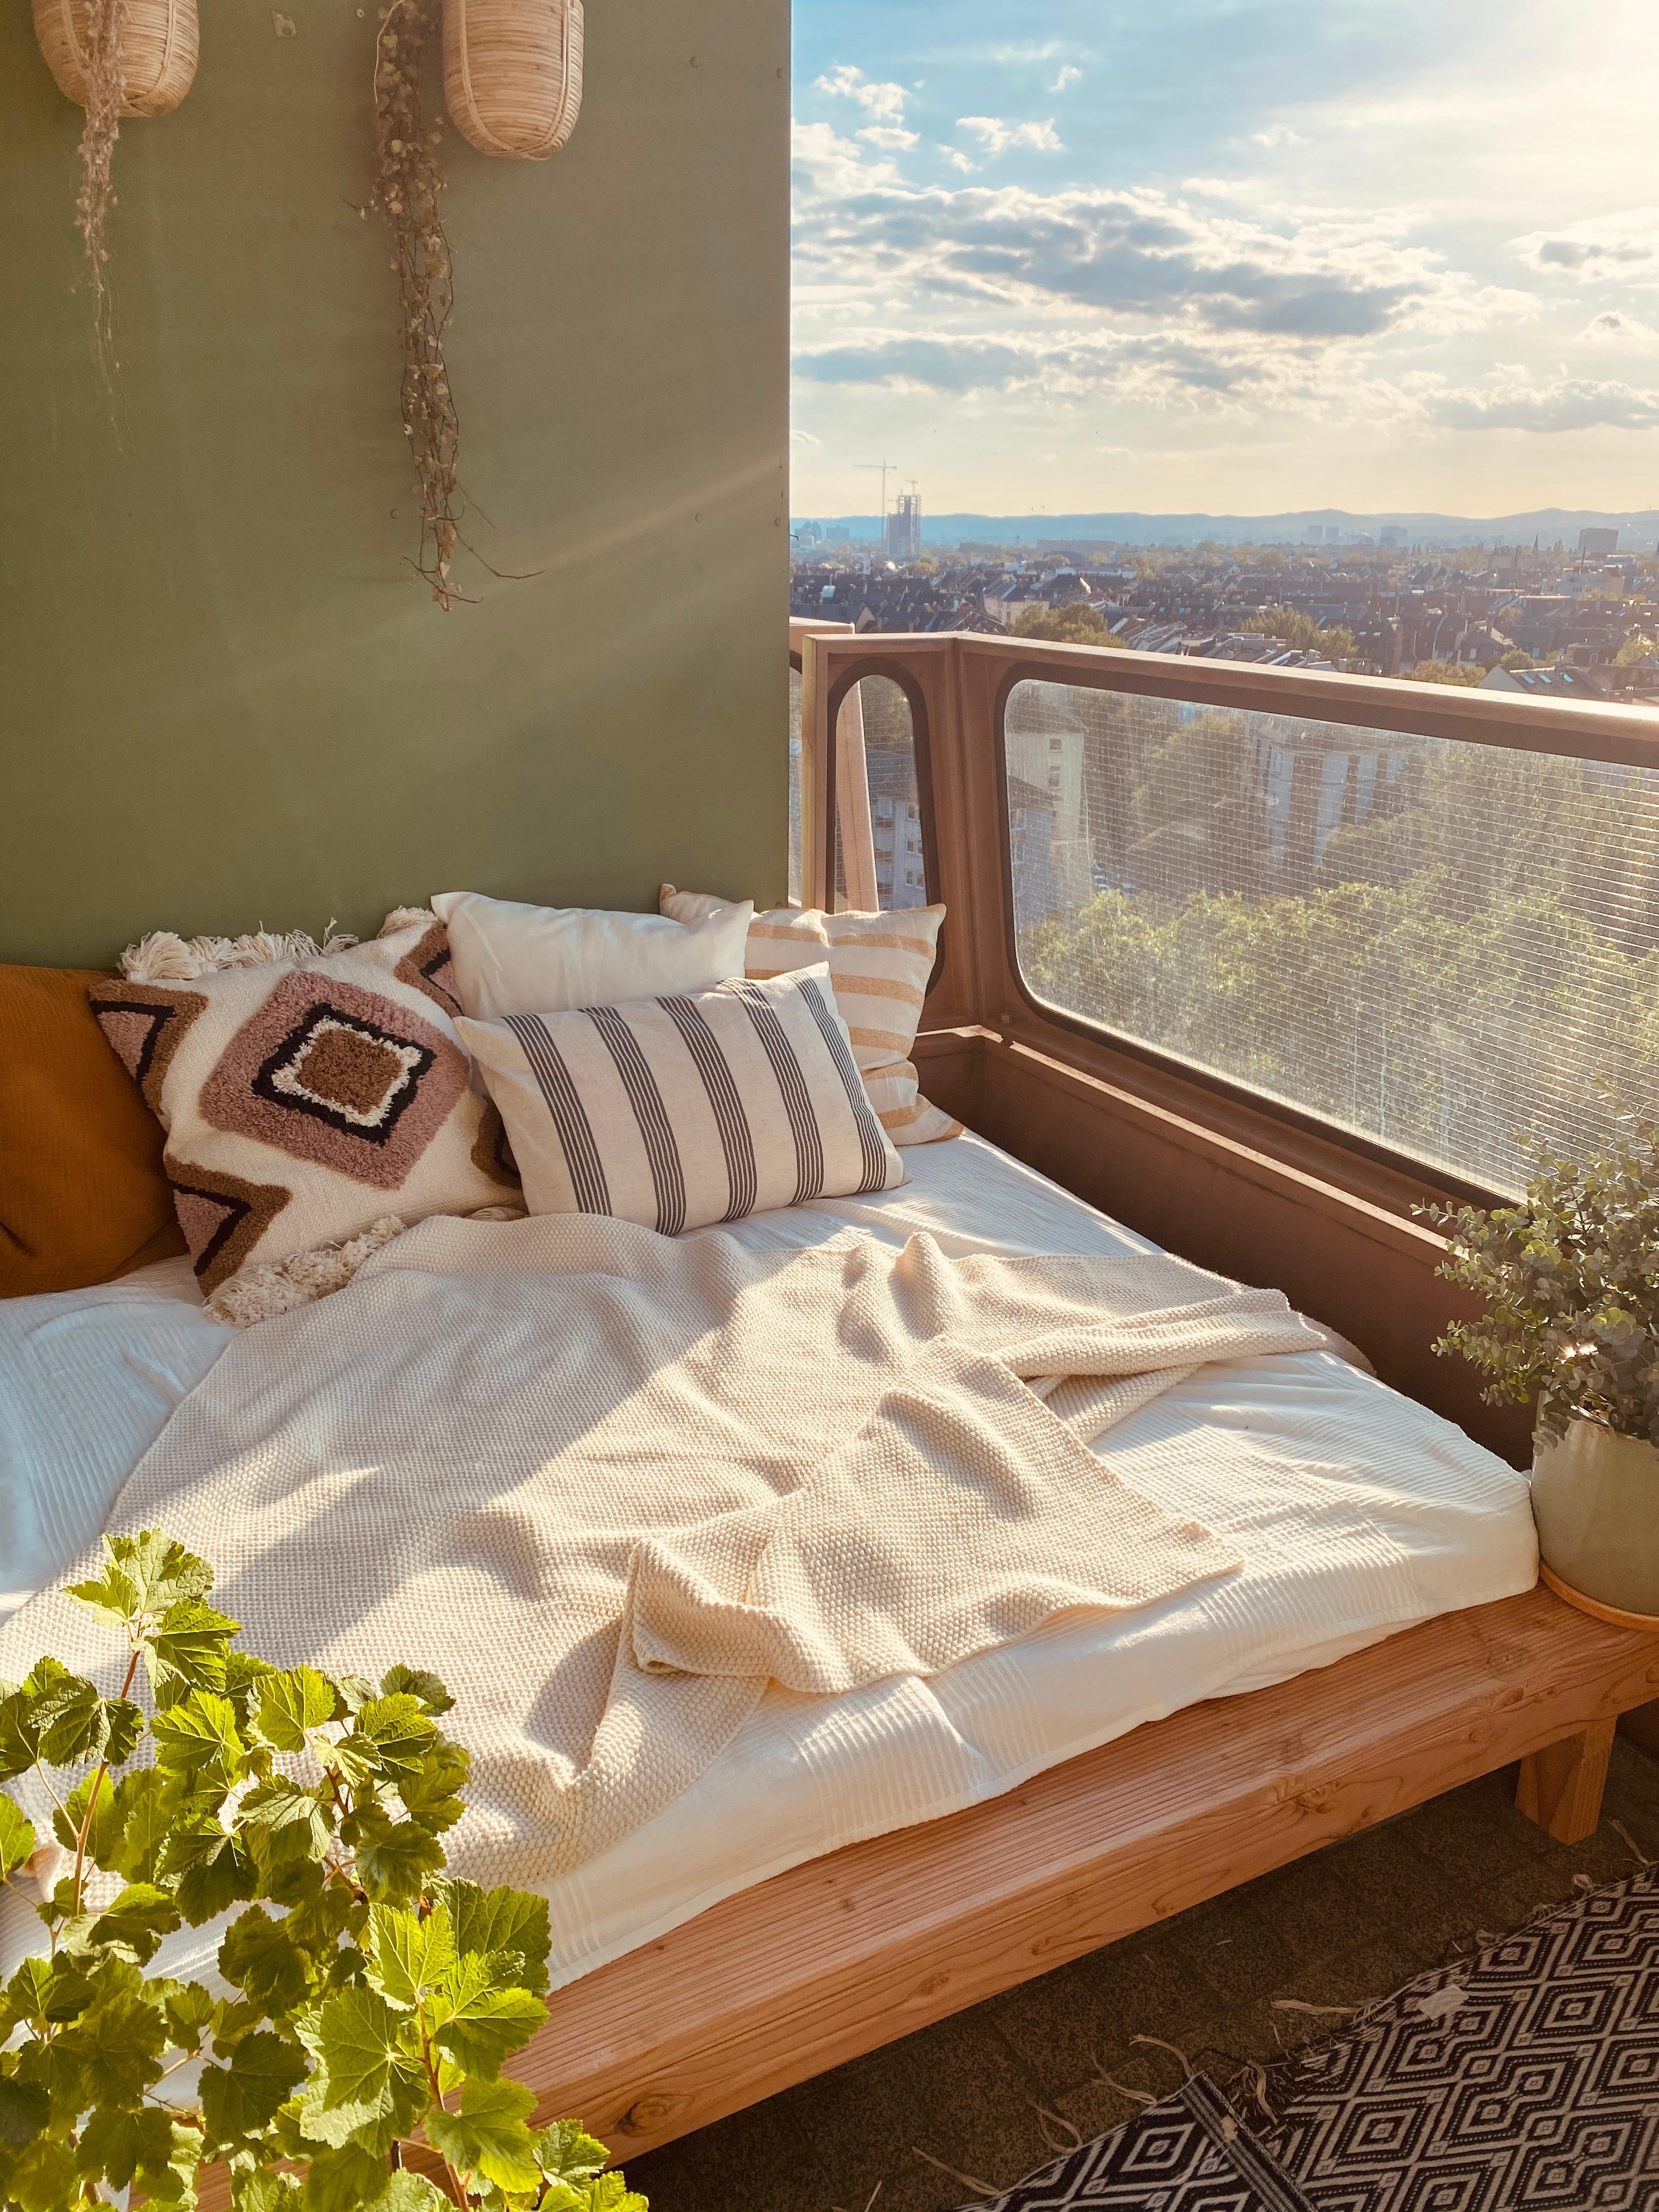 #sofabed mit skylineblick#athomeuphigh